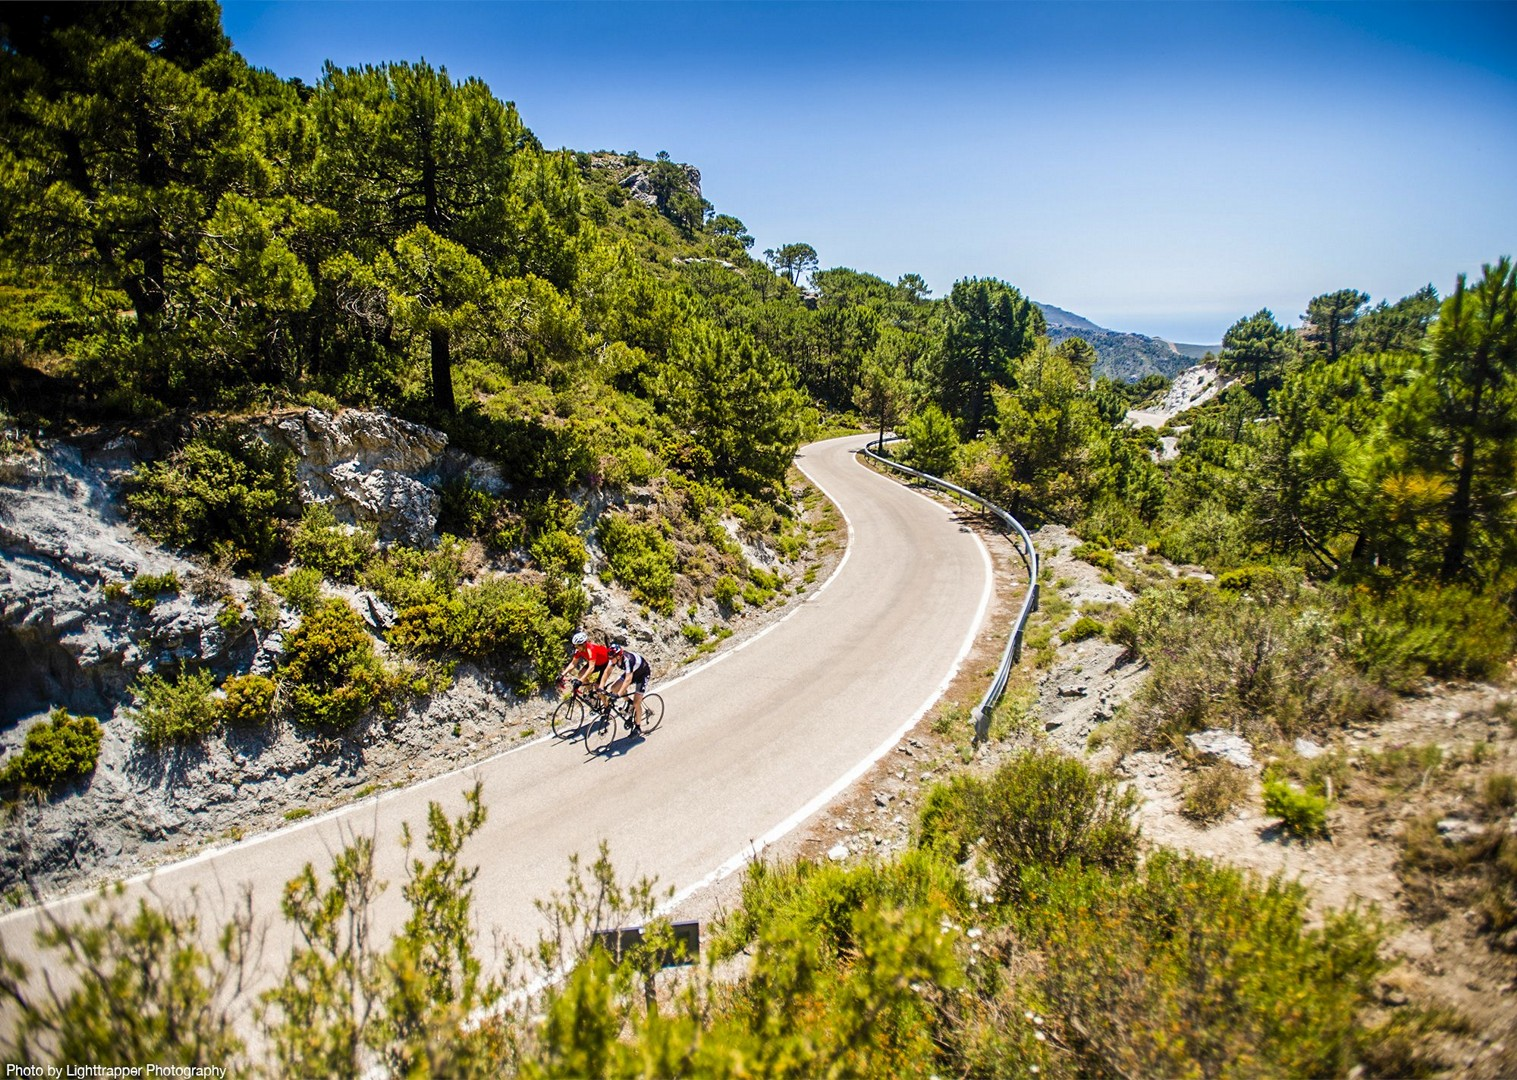 guided-road-cycling-with-incredible-views-southern-spain.jpg - Southern Spain - Roads of Ronda - Guided Road Cycling Holiday - Road Cycling